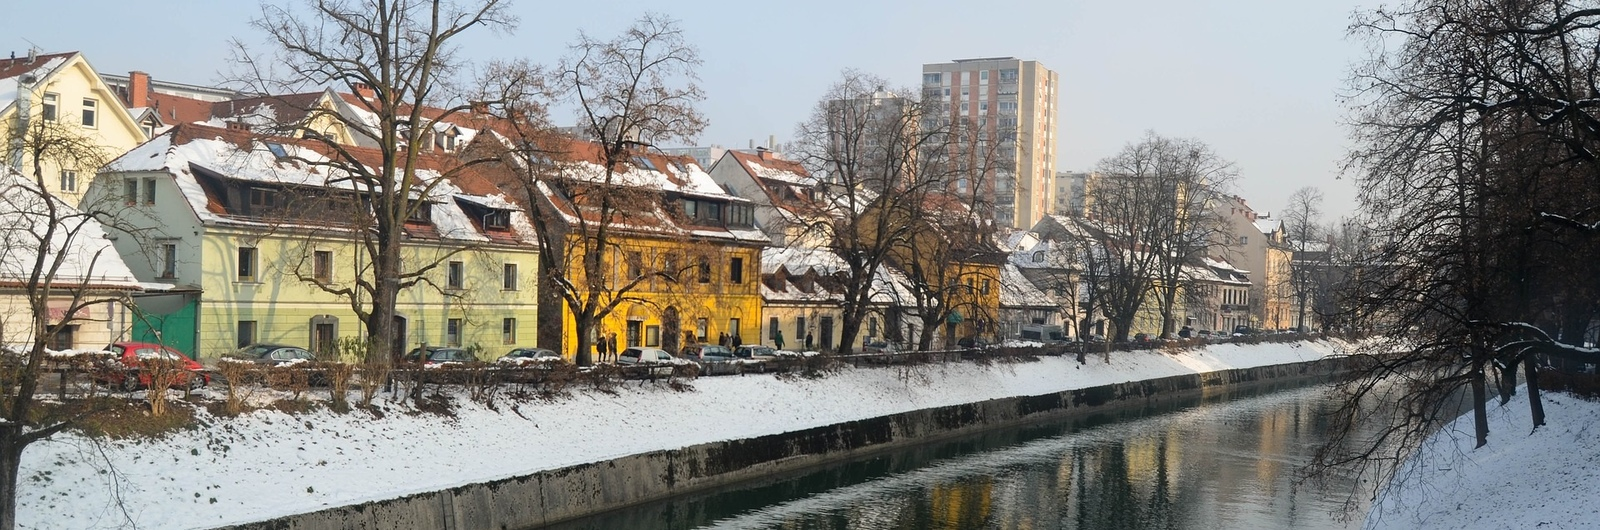 ljubljana city header